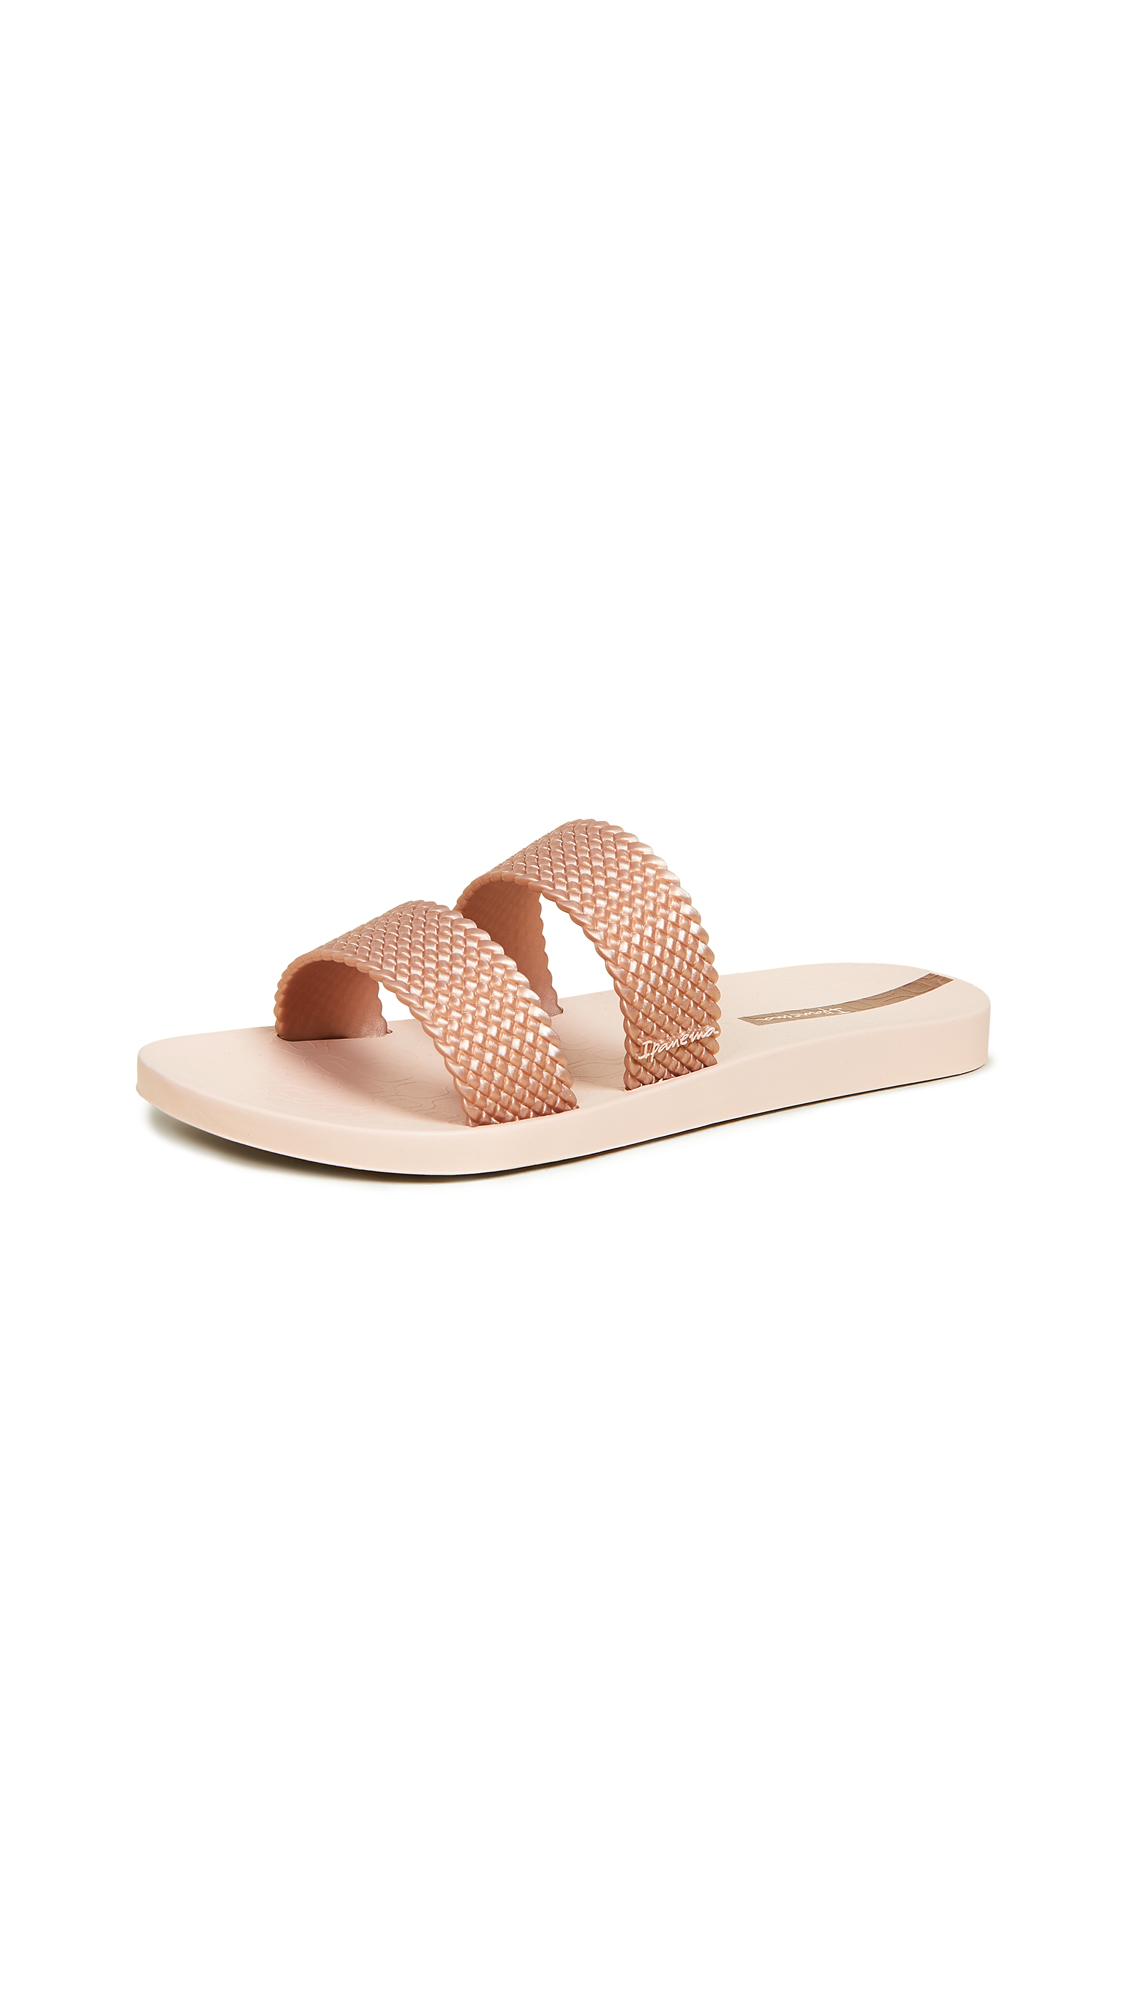 Ipanema City Double Strap Slides - Pink/Pink